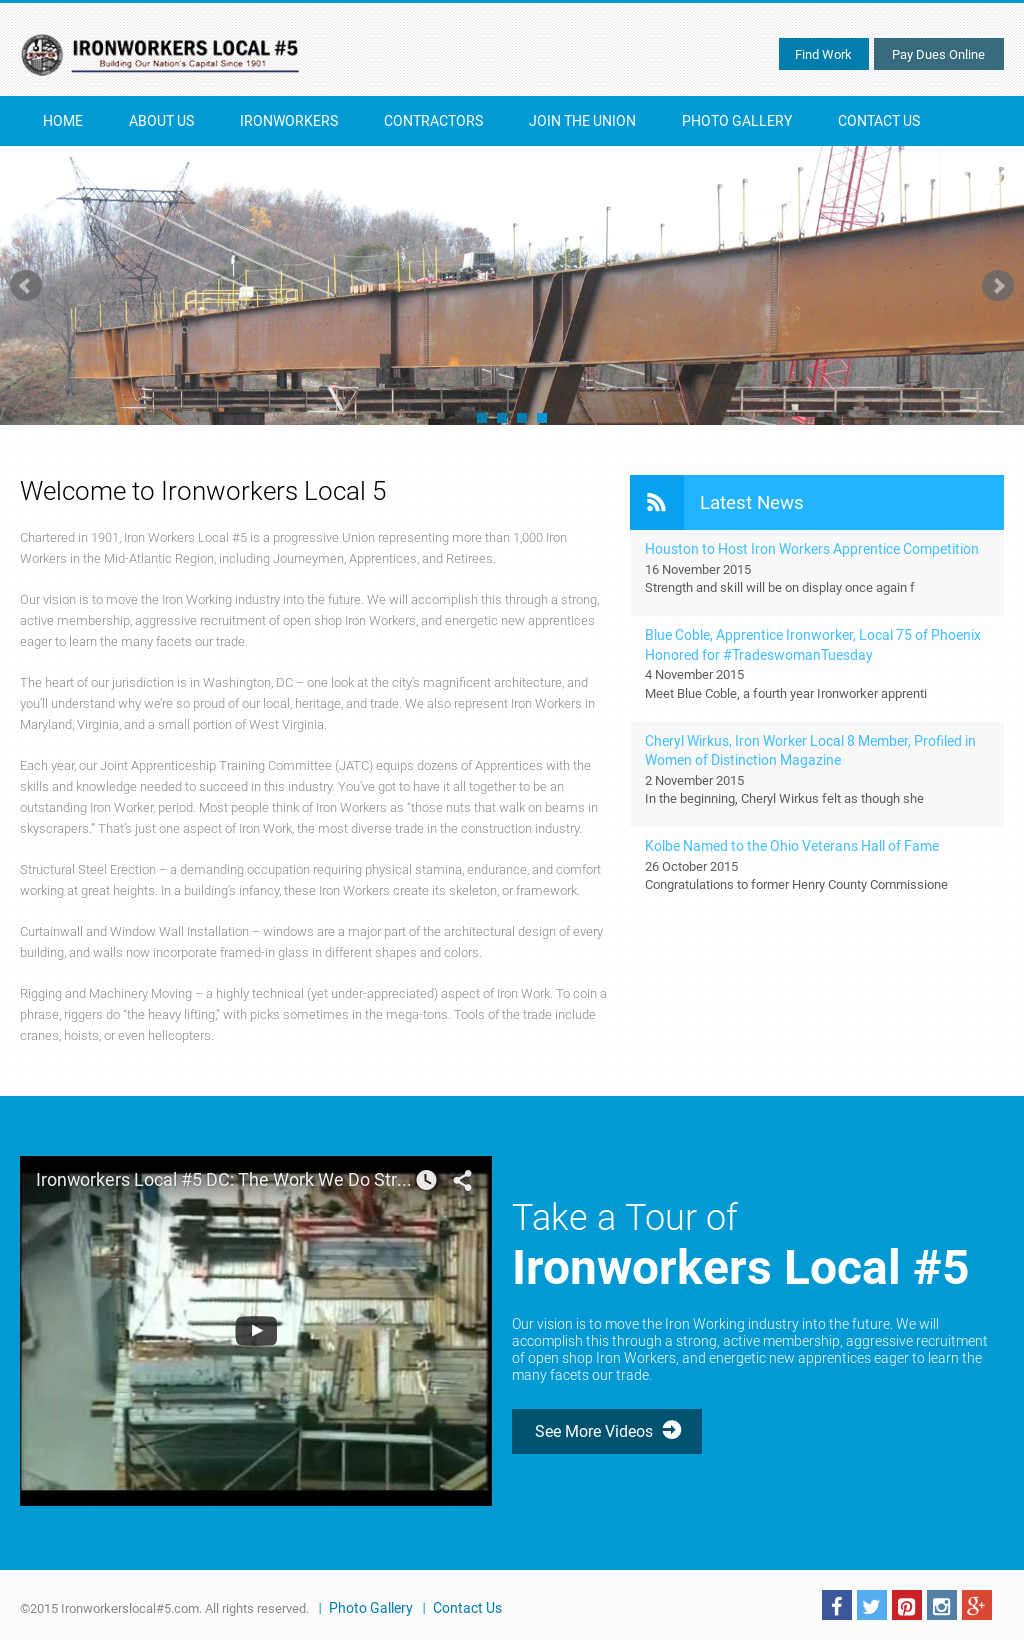 IronWorkers Local #5 Competitors, Revenue and Employees